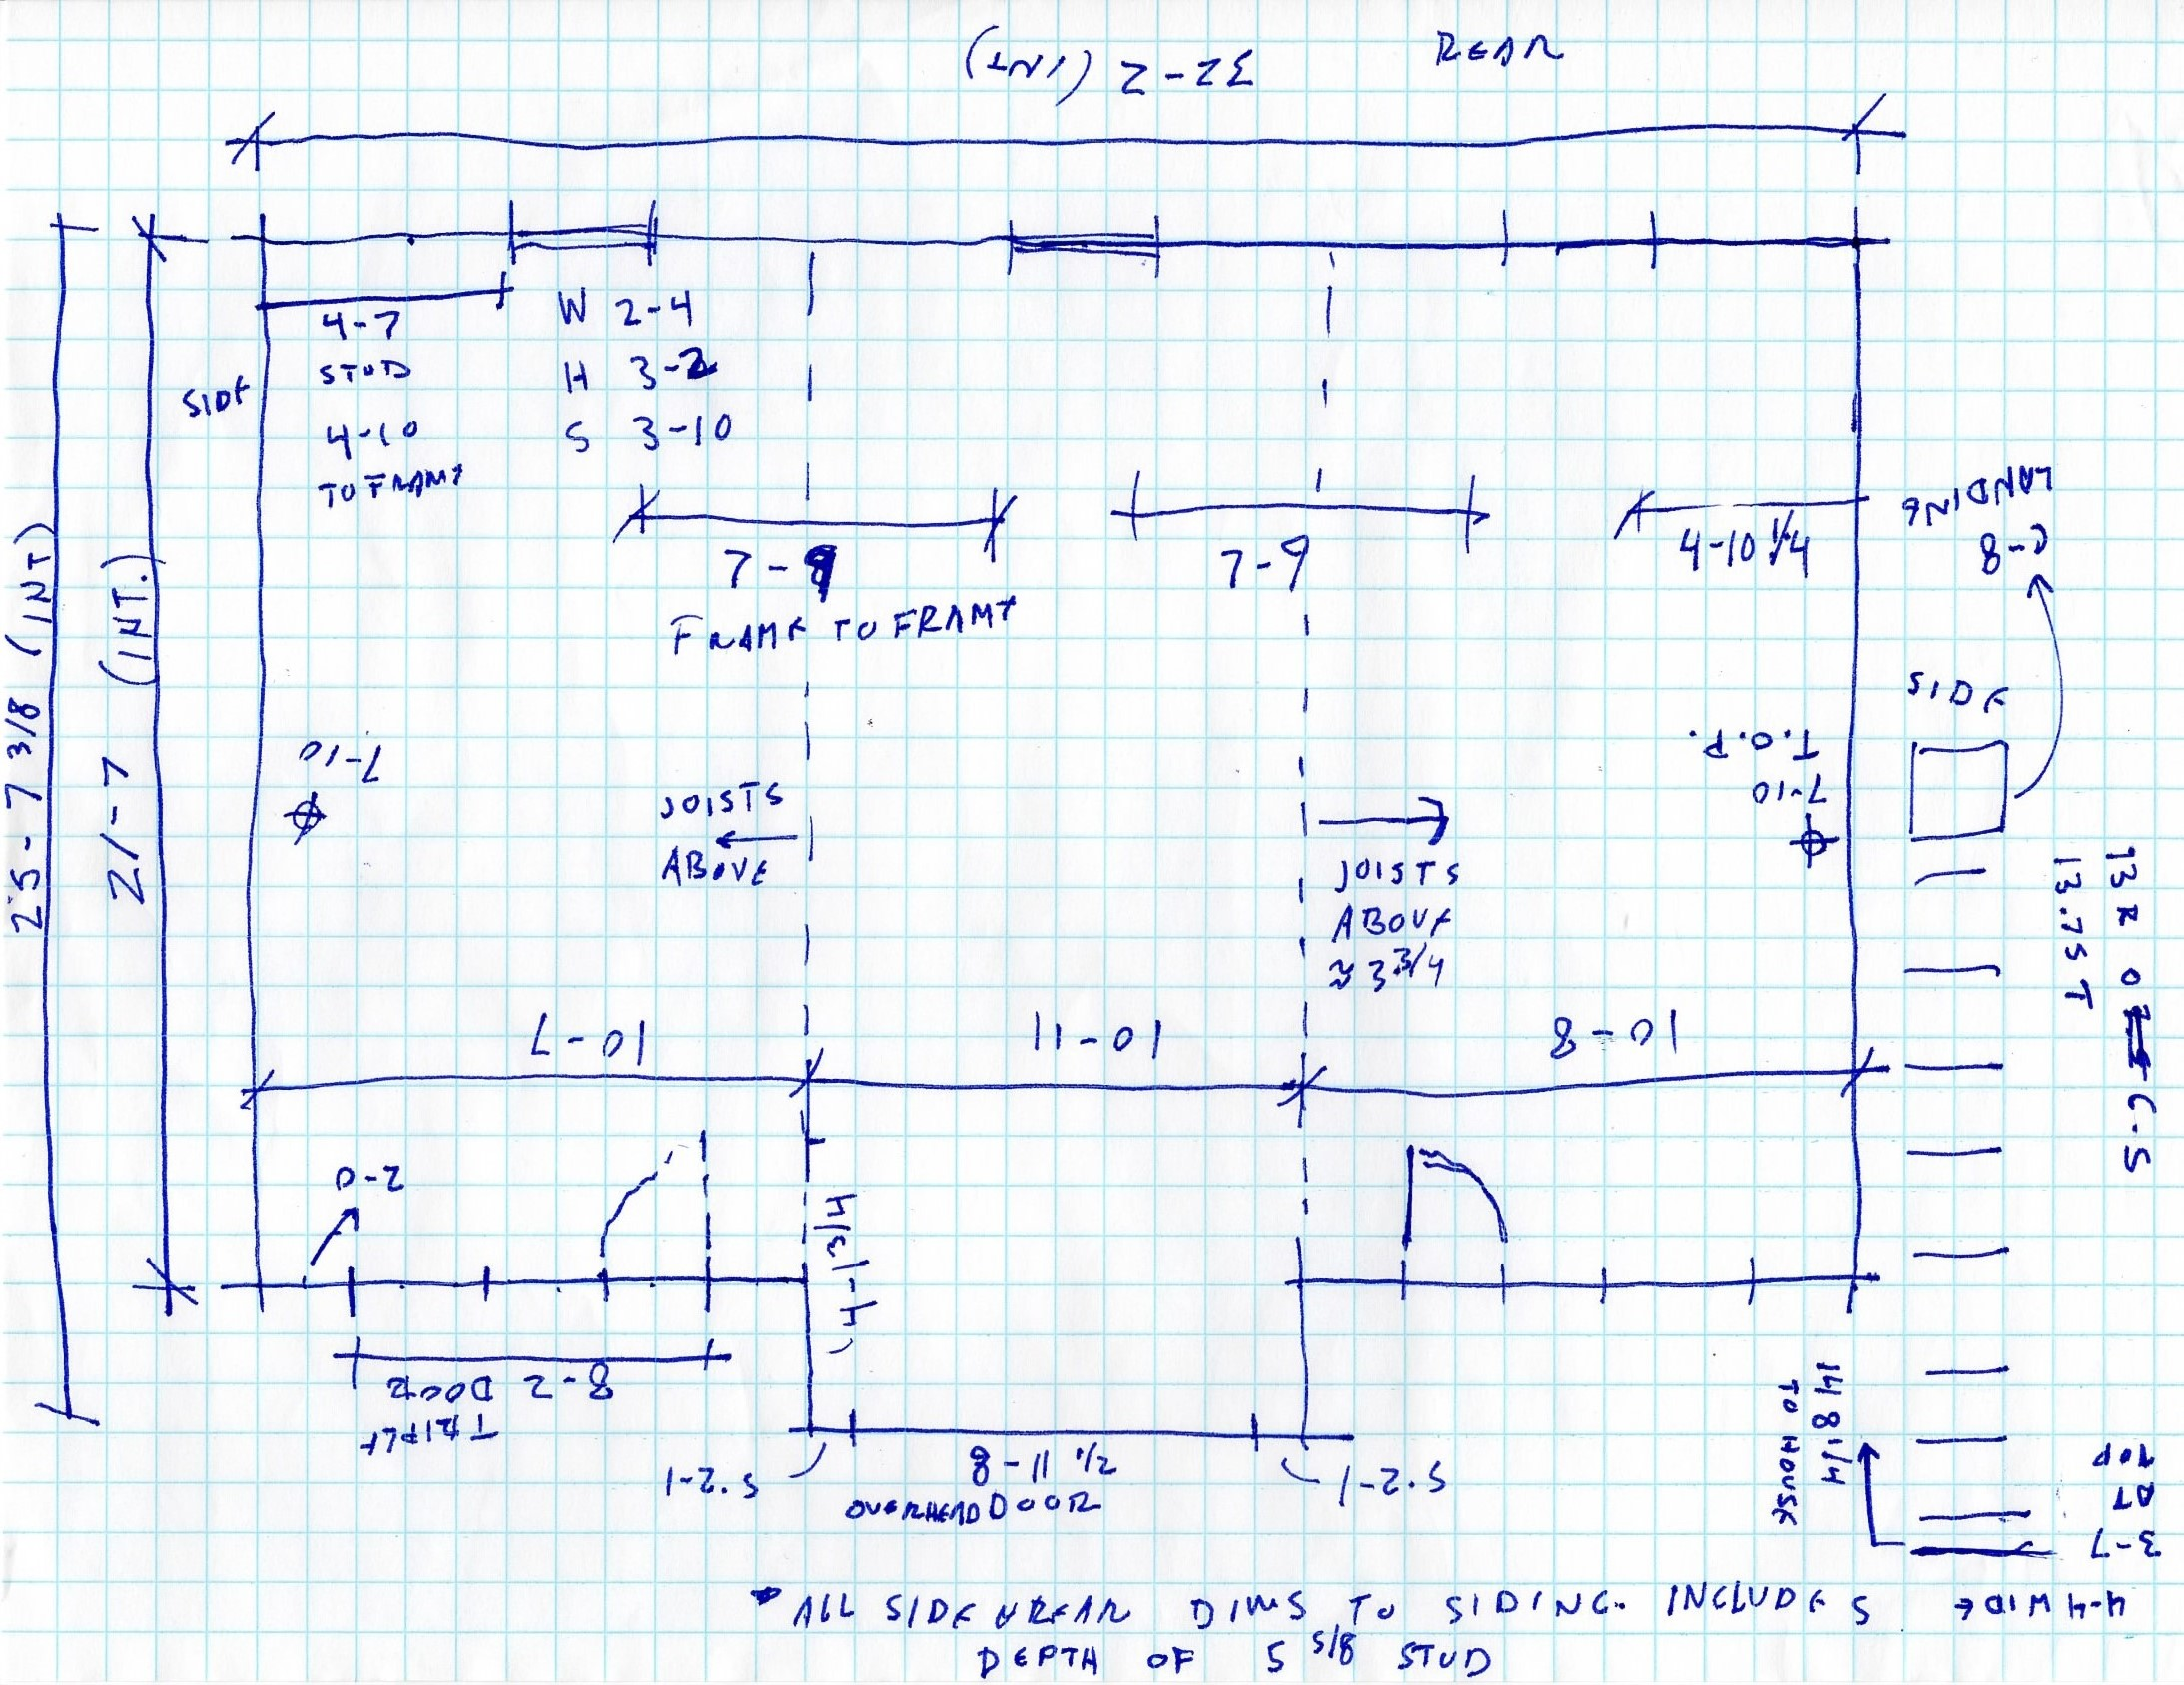 Takoma Home Office  field measure notes